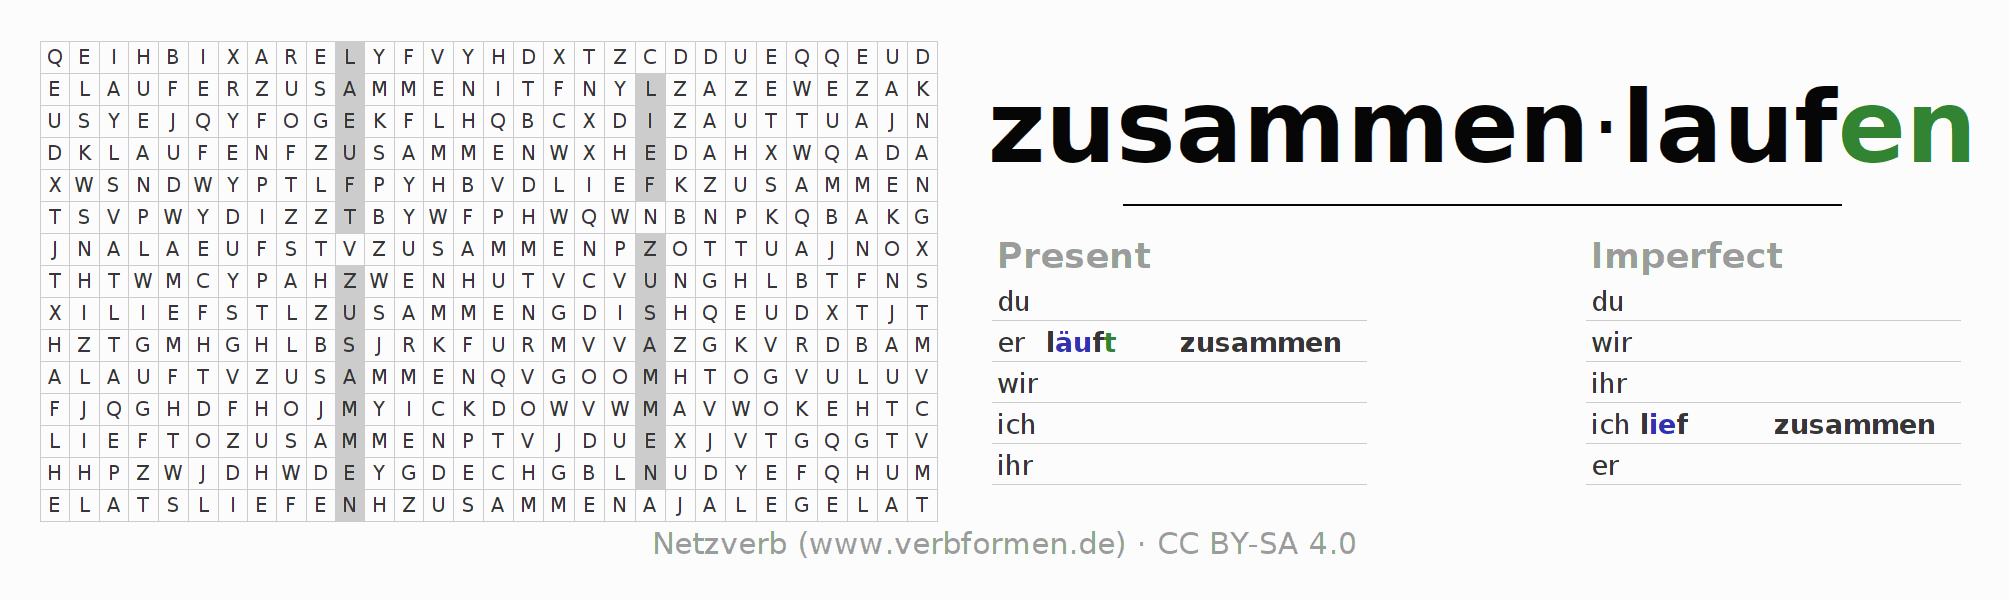 Word search puzzle for the conjugation of the verb zusammenlaufen